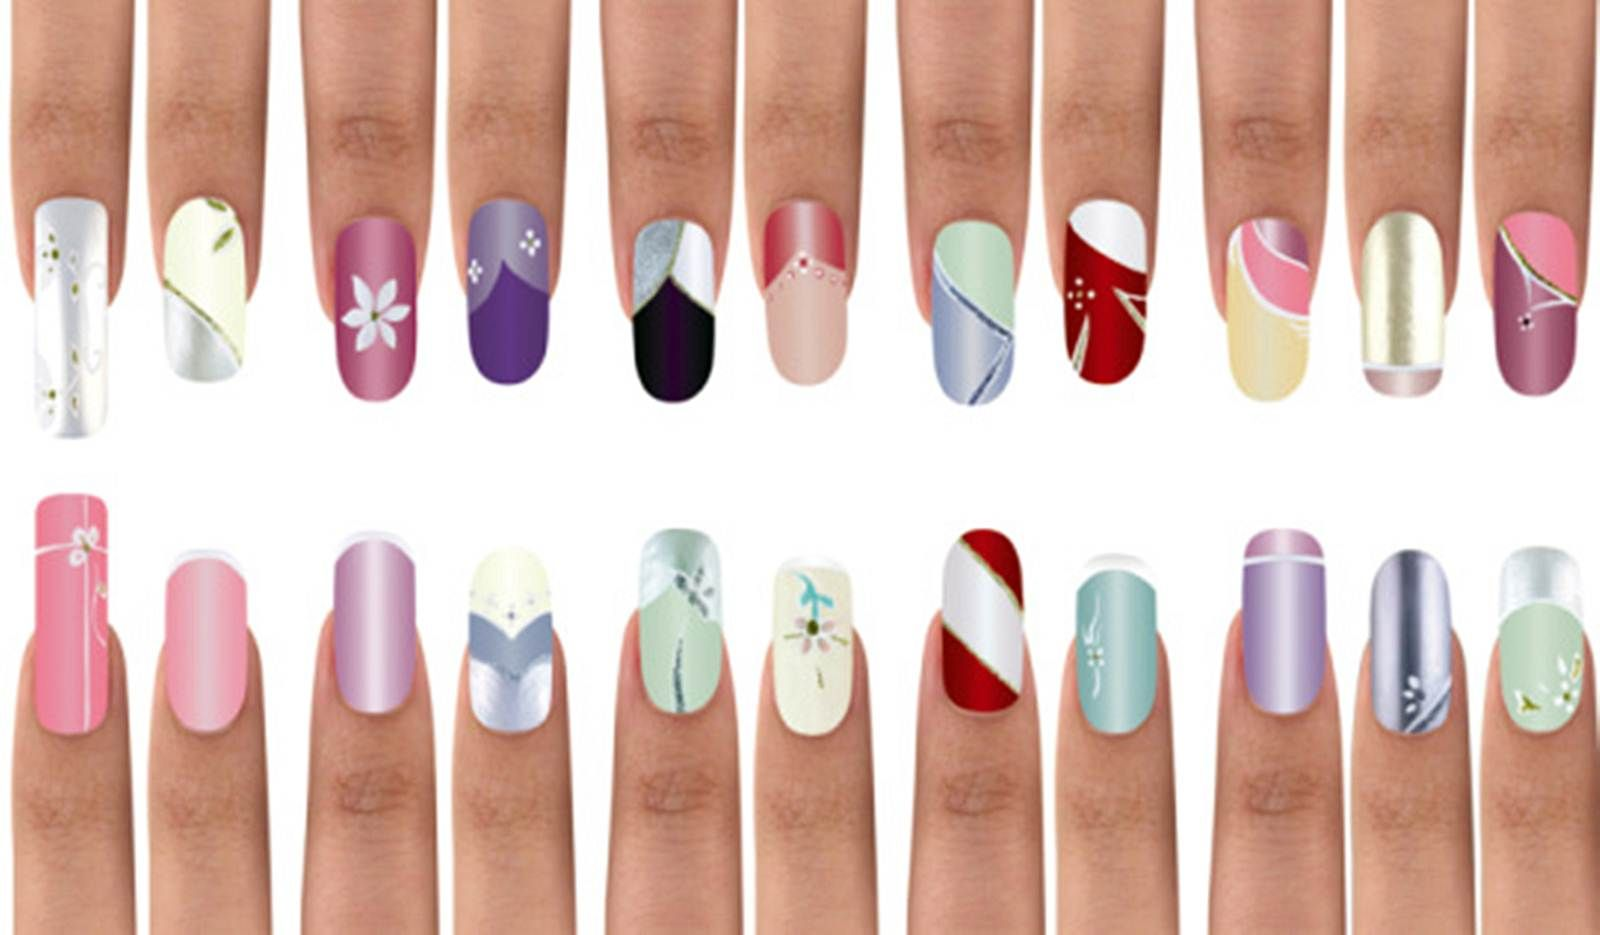 Easy nail designs for beginners at home step by step Nail Art ...